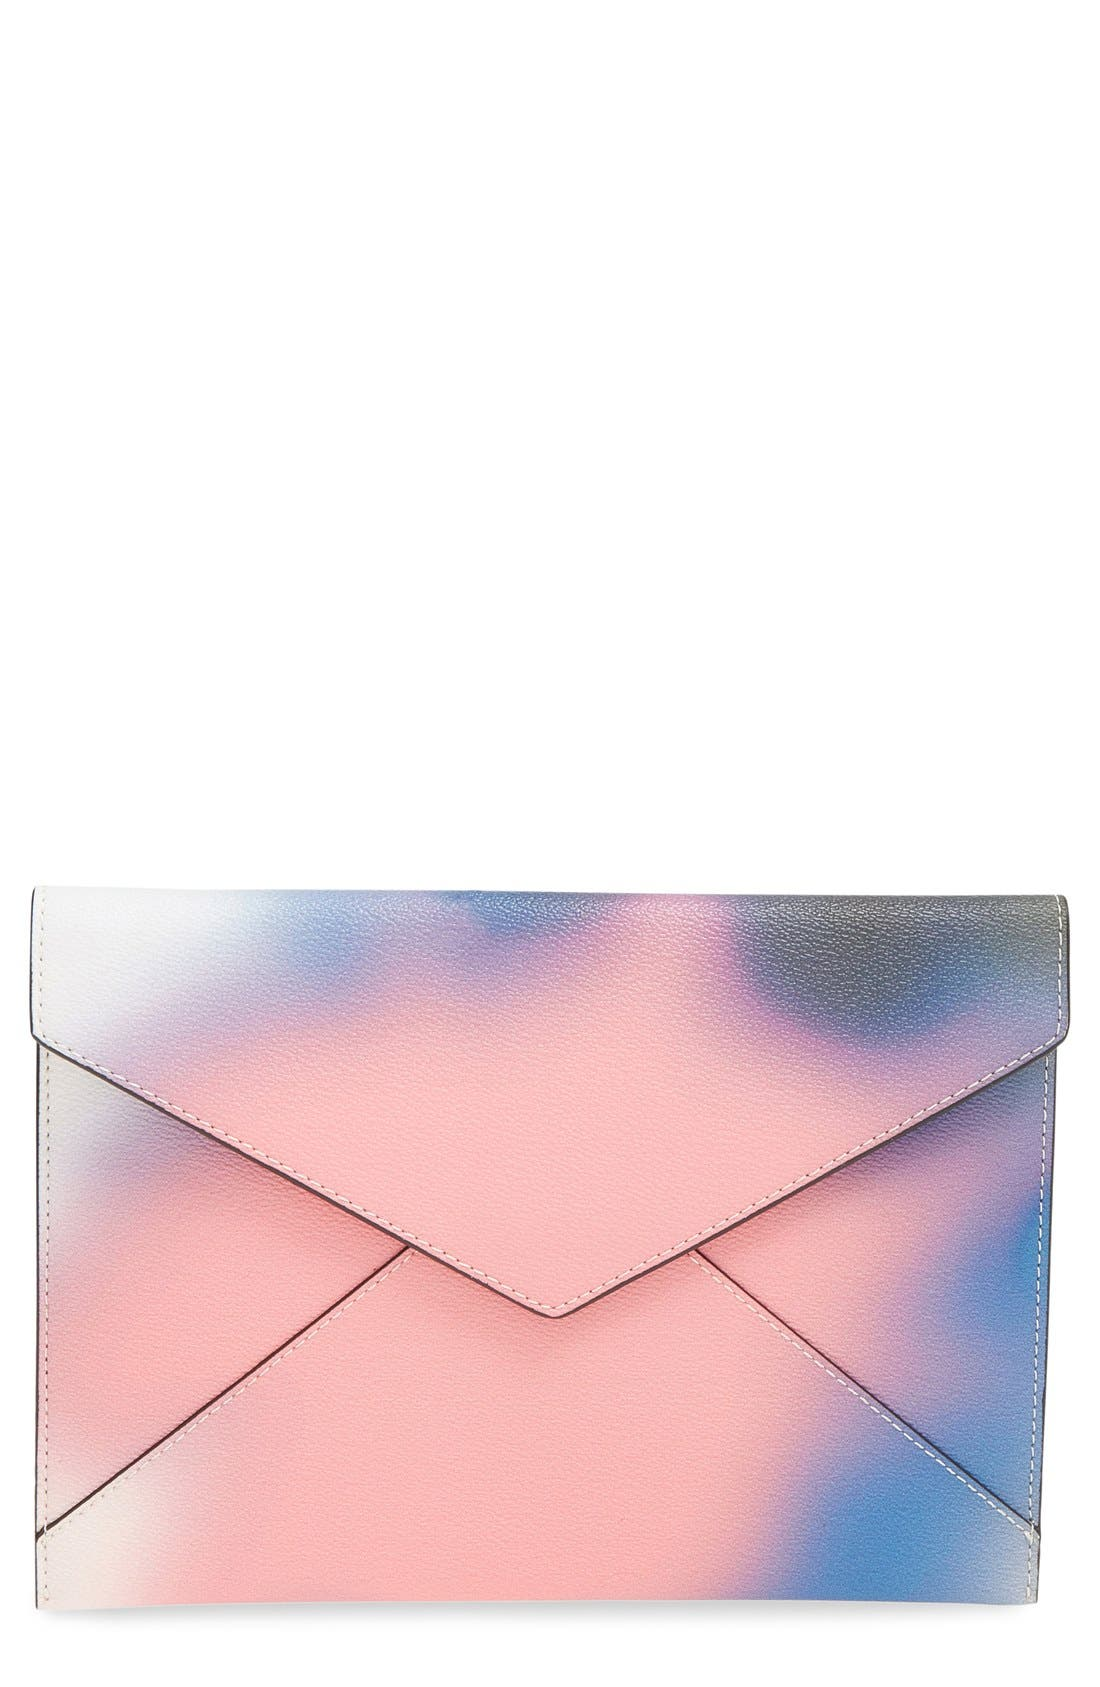 REBECCA MINKOFF, 'Leo' Envelope Clutch, Main thumbnail 1, color, 650